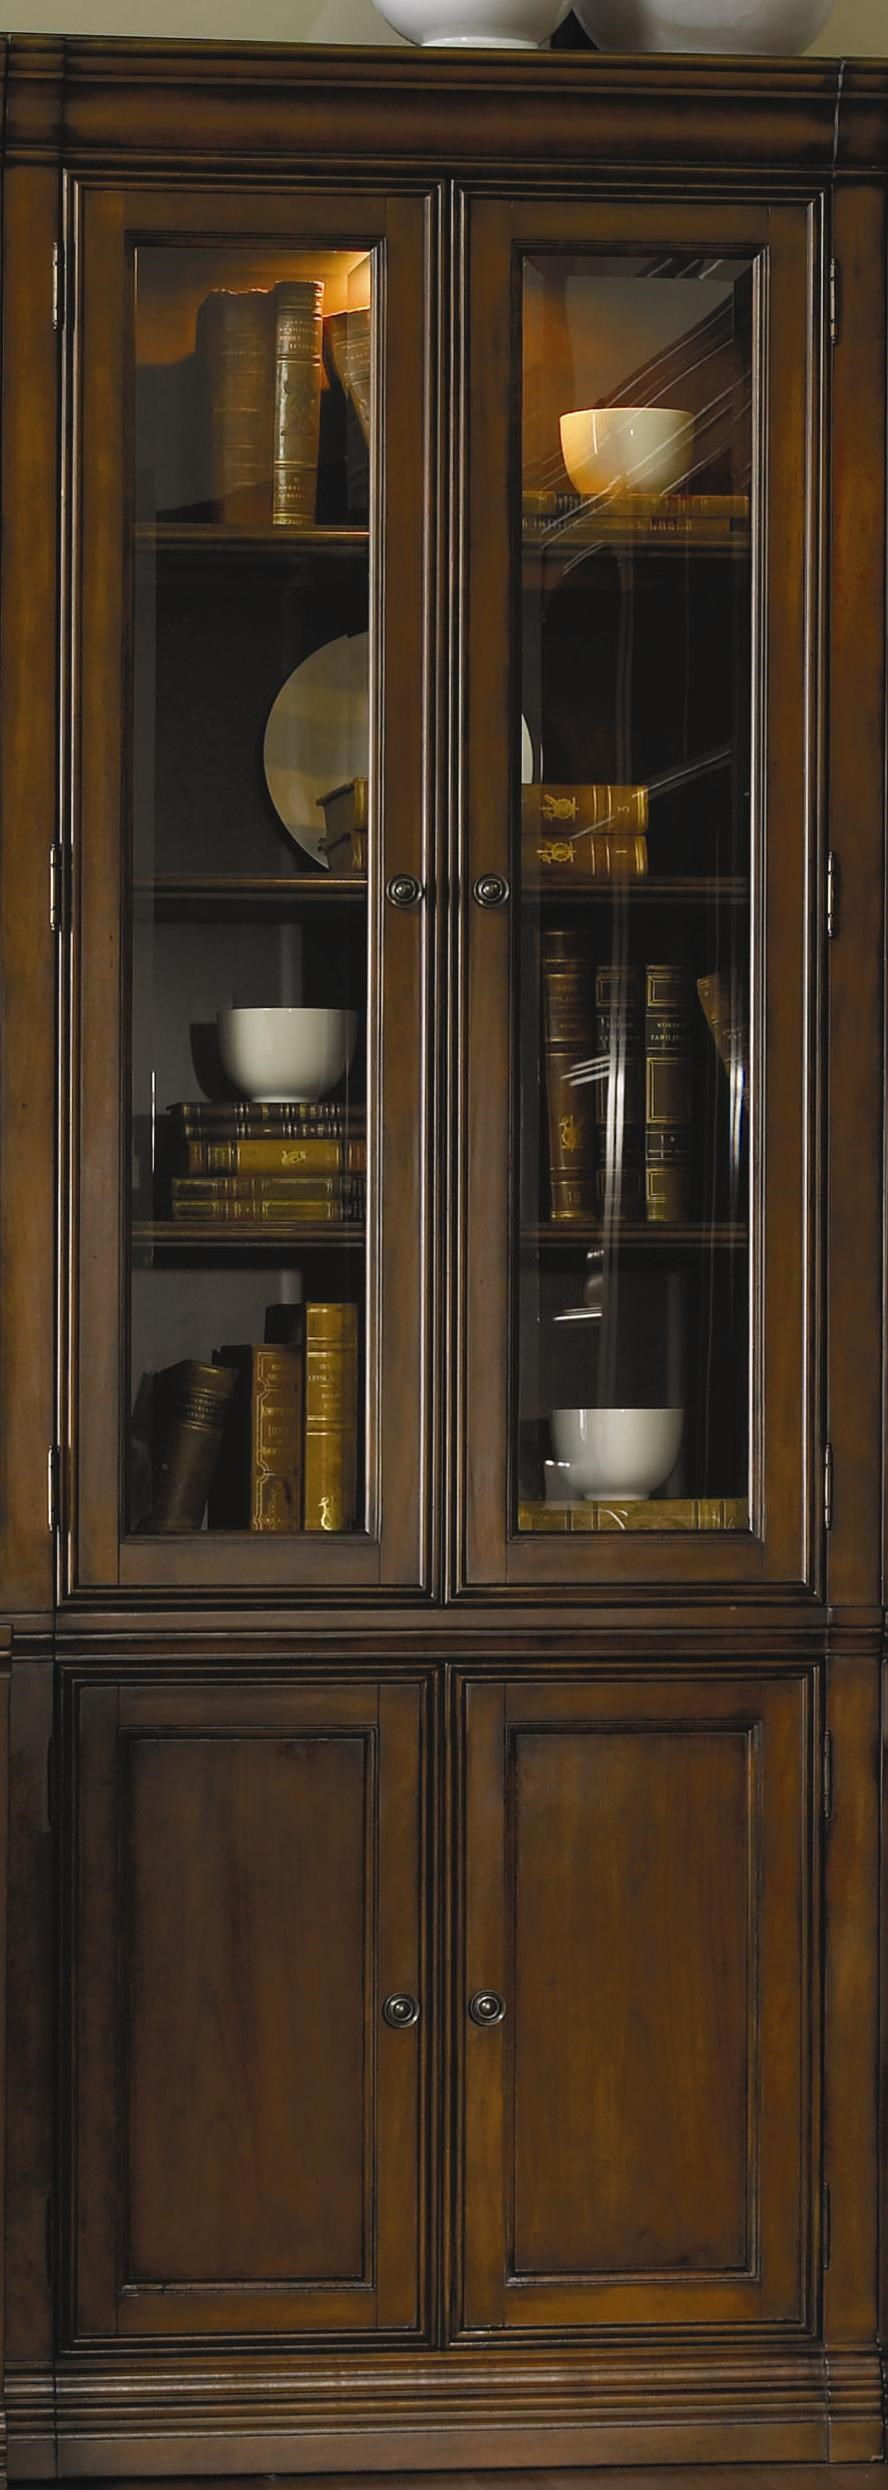 Hooker Furniture Cherry Creek Wall Curio Cabinet ...